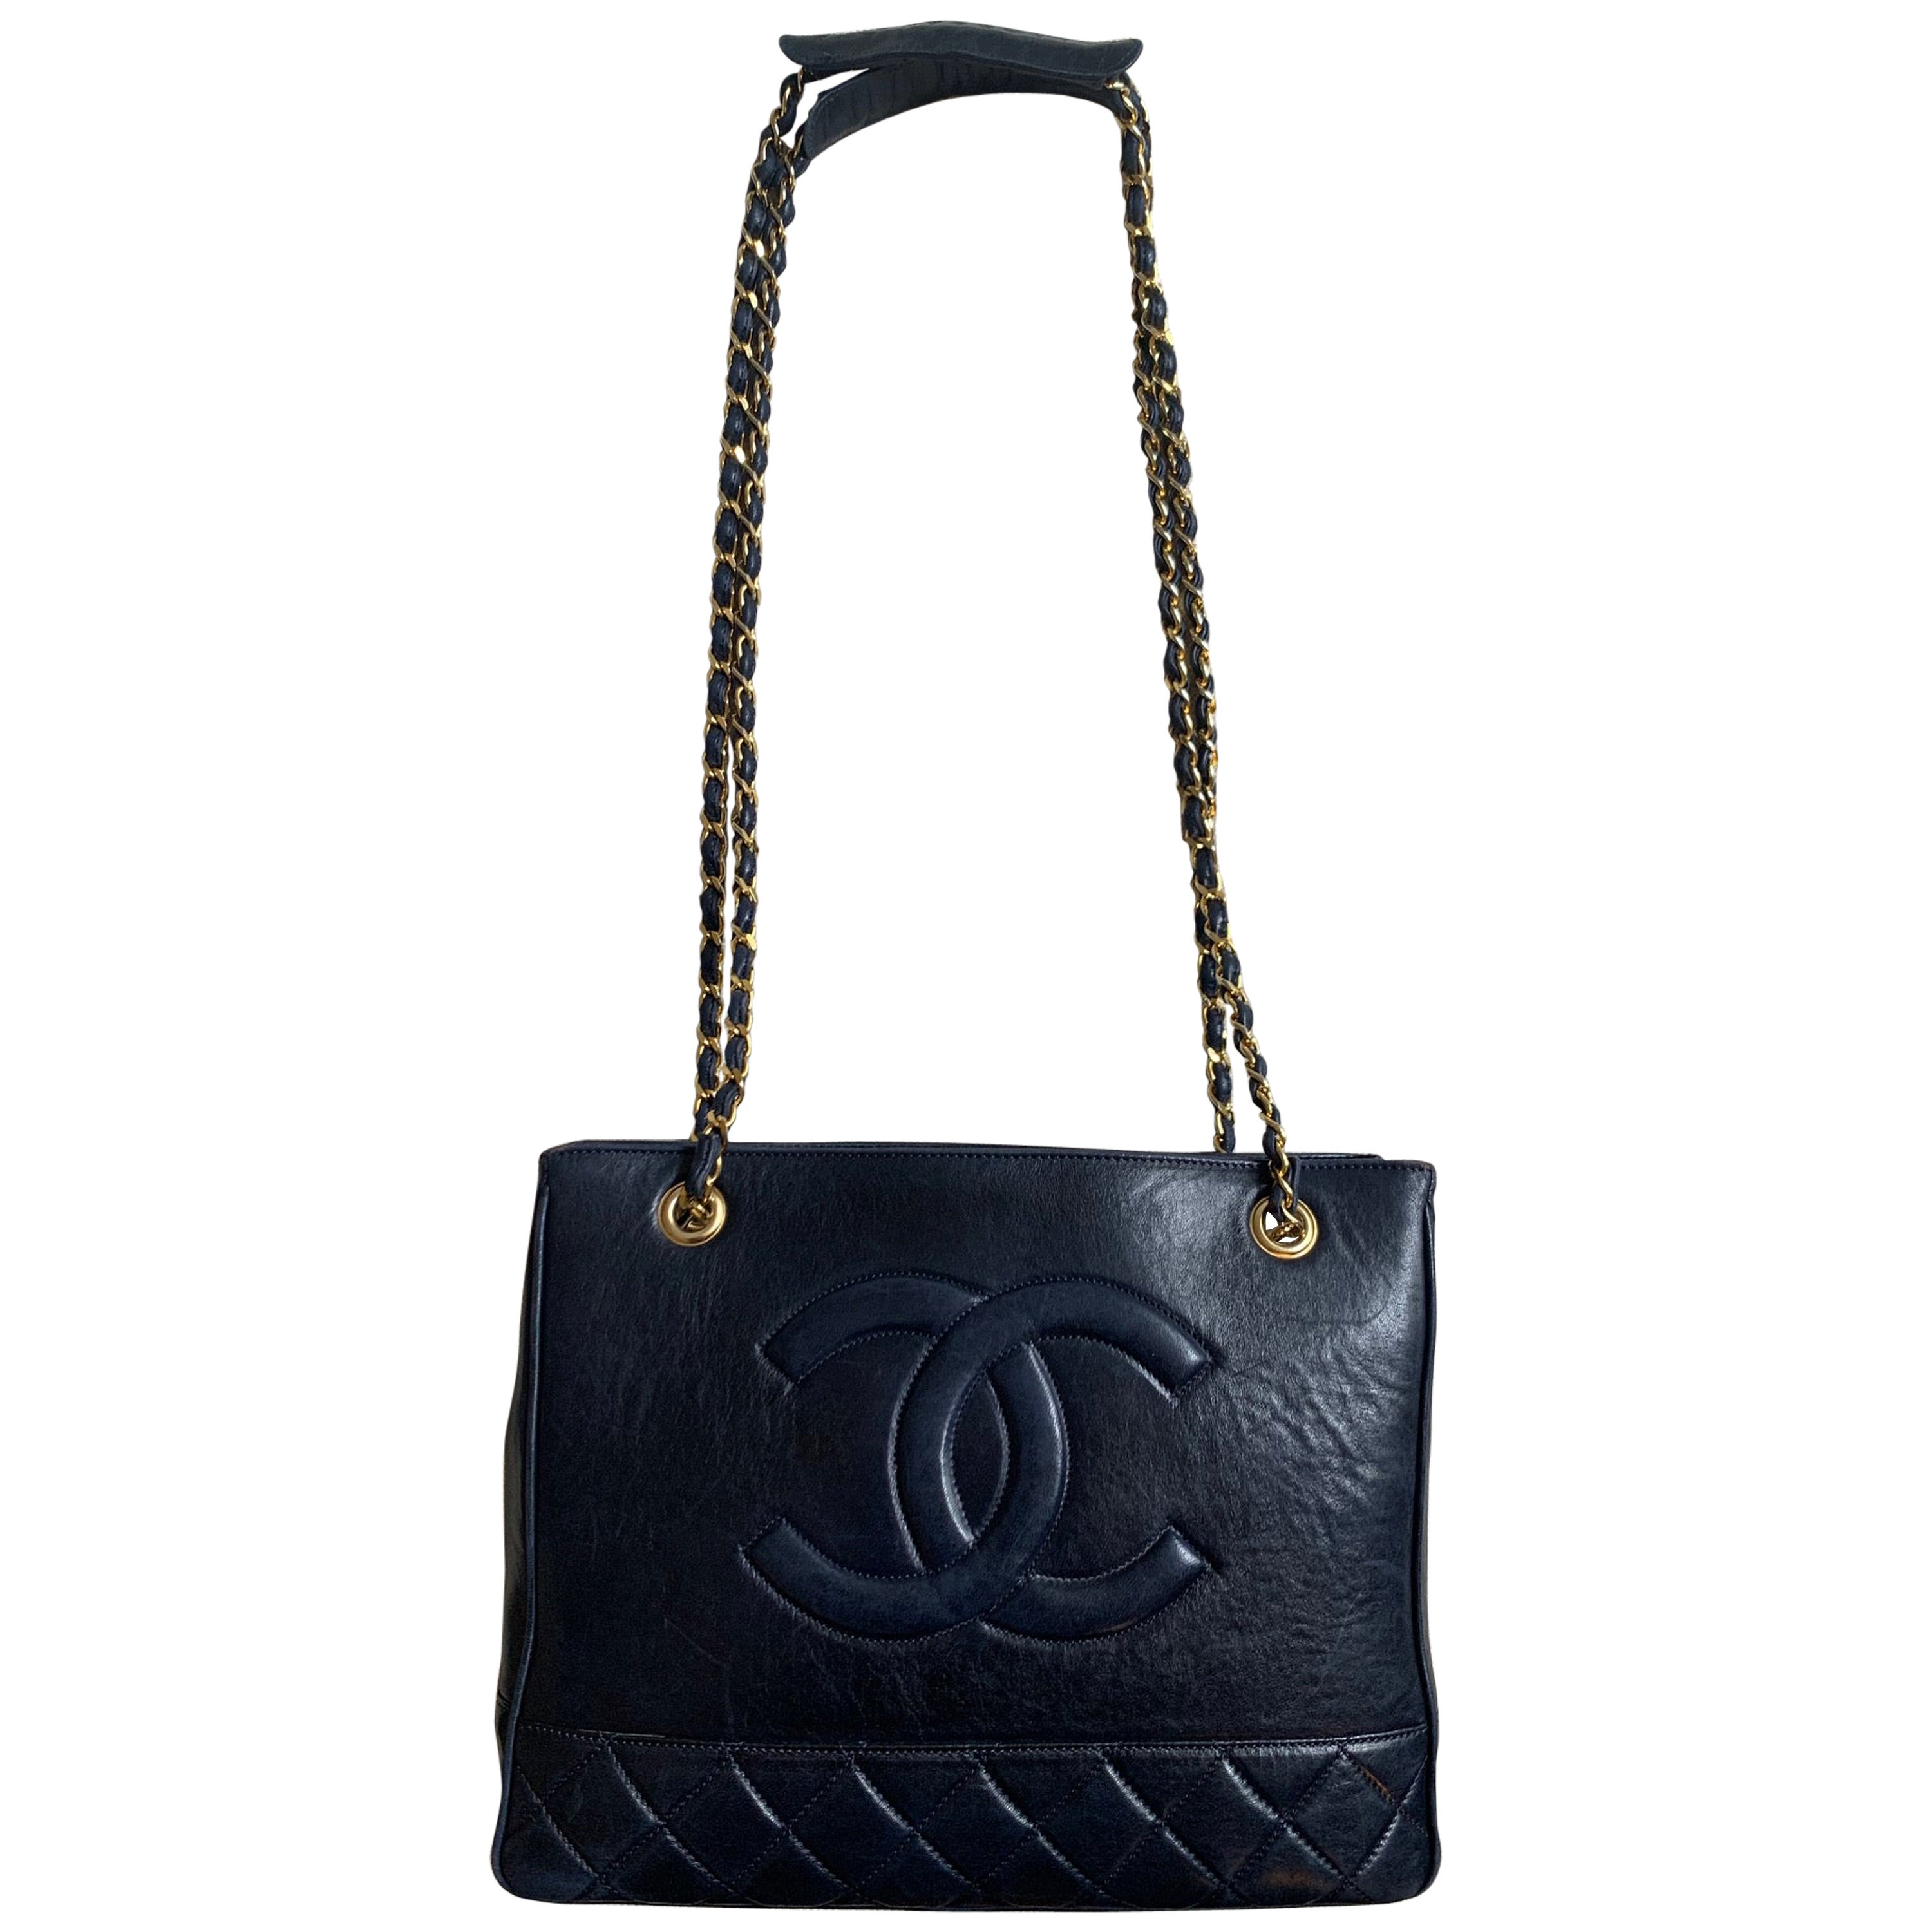 Vintage Chanel Cabas bag Navy leather and gold chain